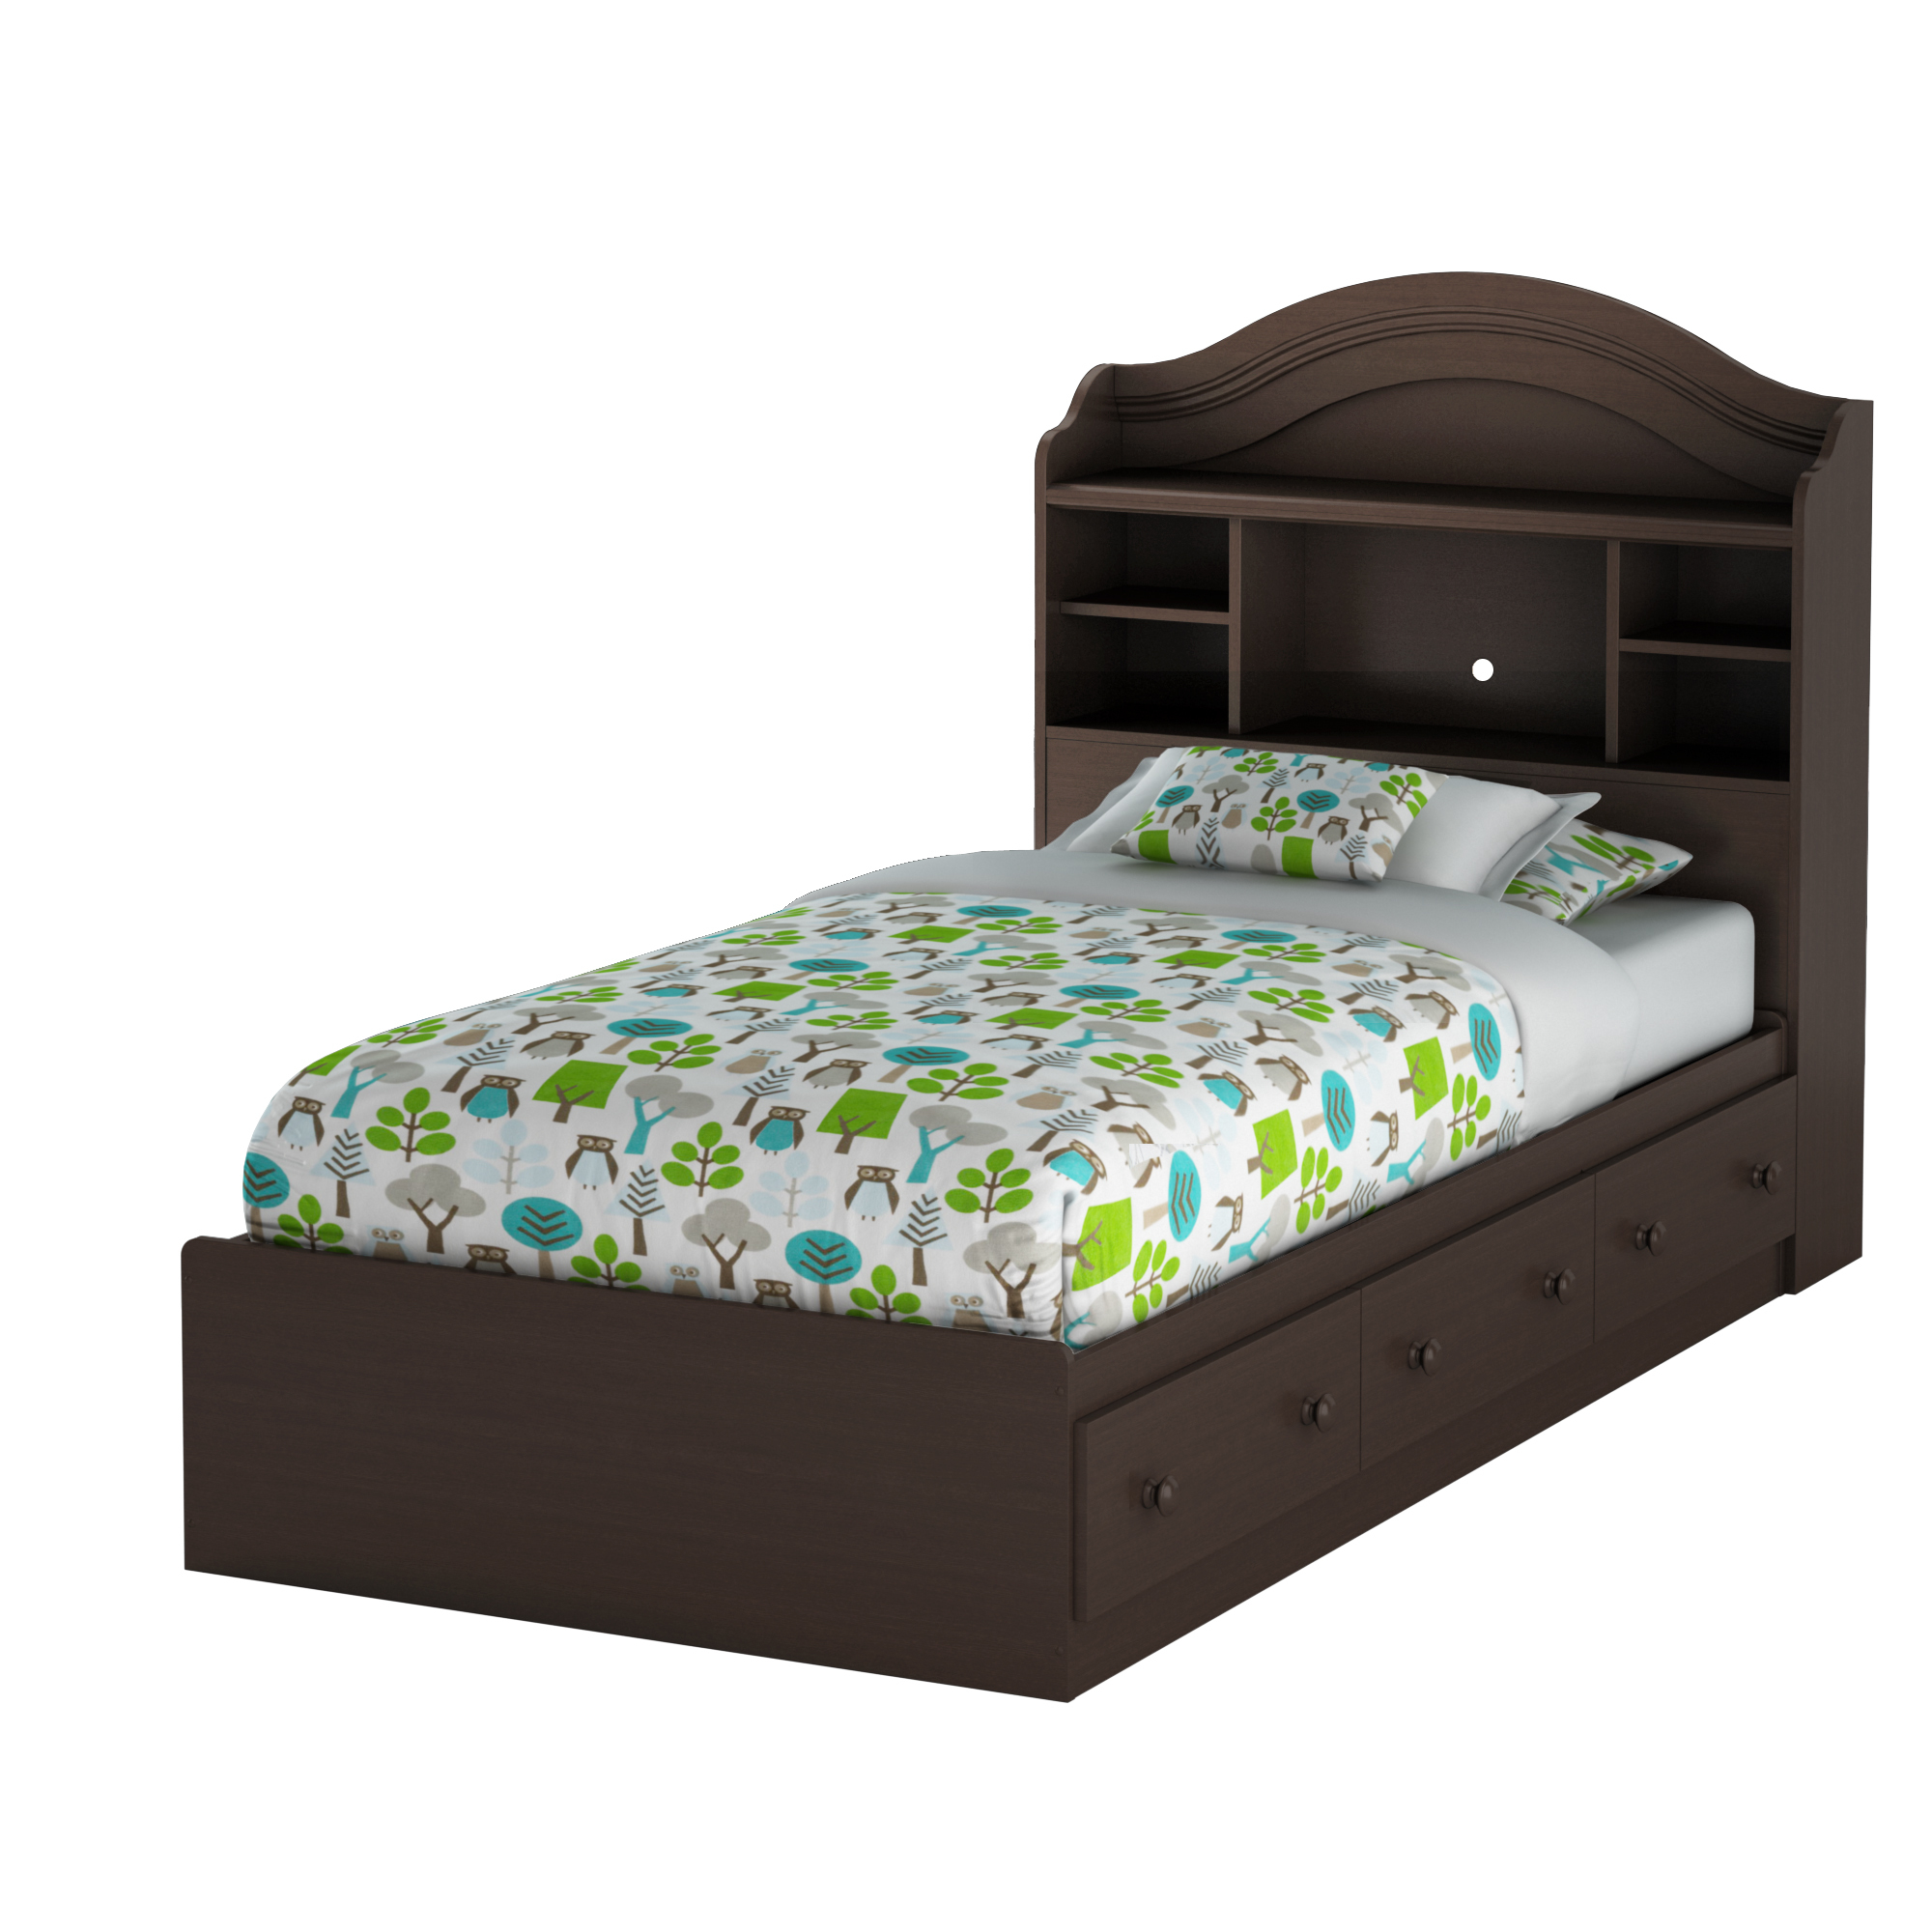 South Shore Summer Breeze Twin Mates Bed with Drawers and Bookcase Headboard (39'') Set, Chocolate